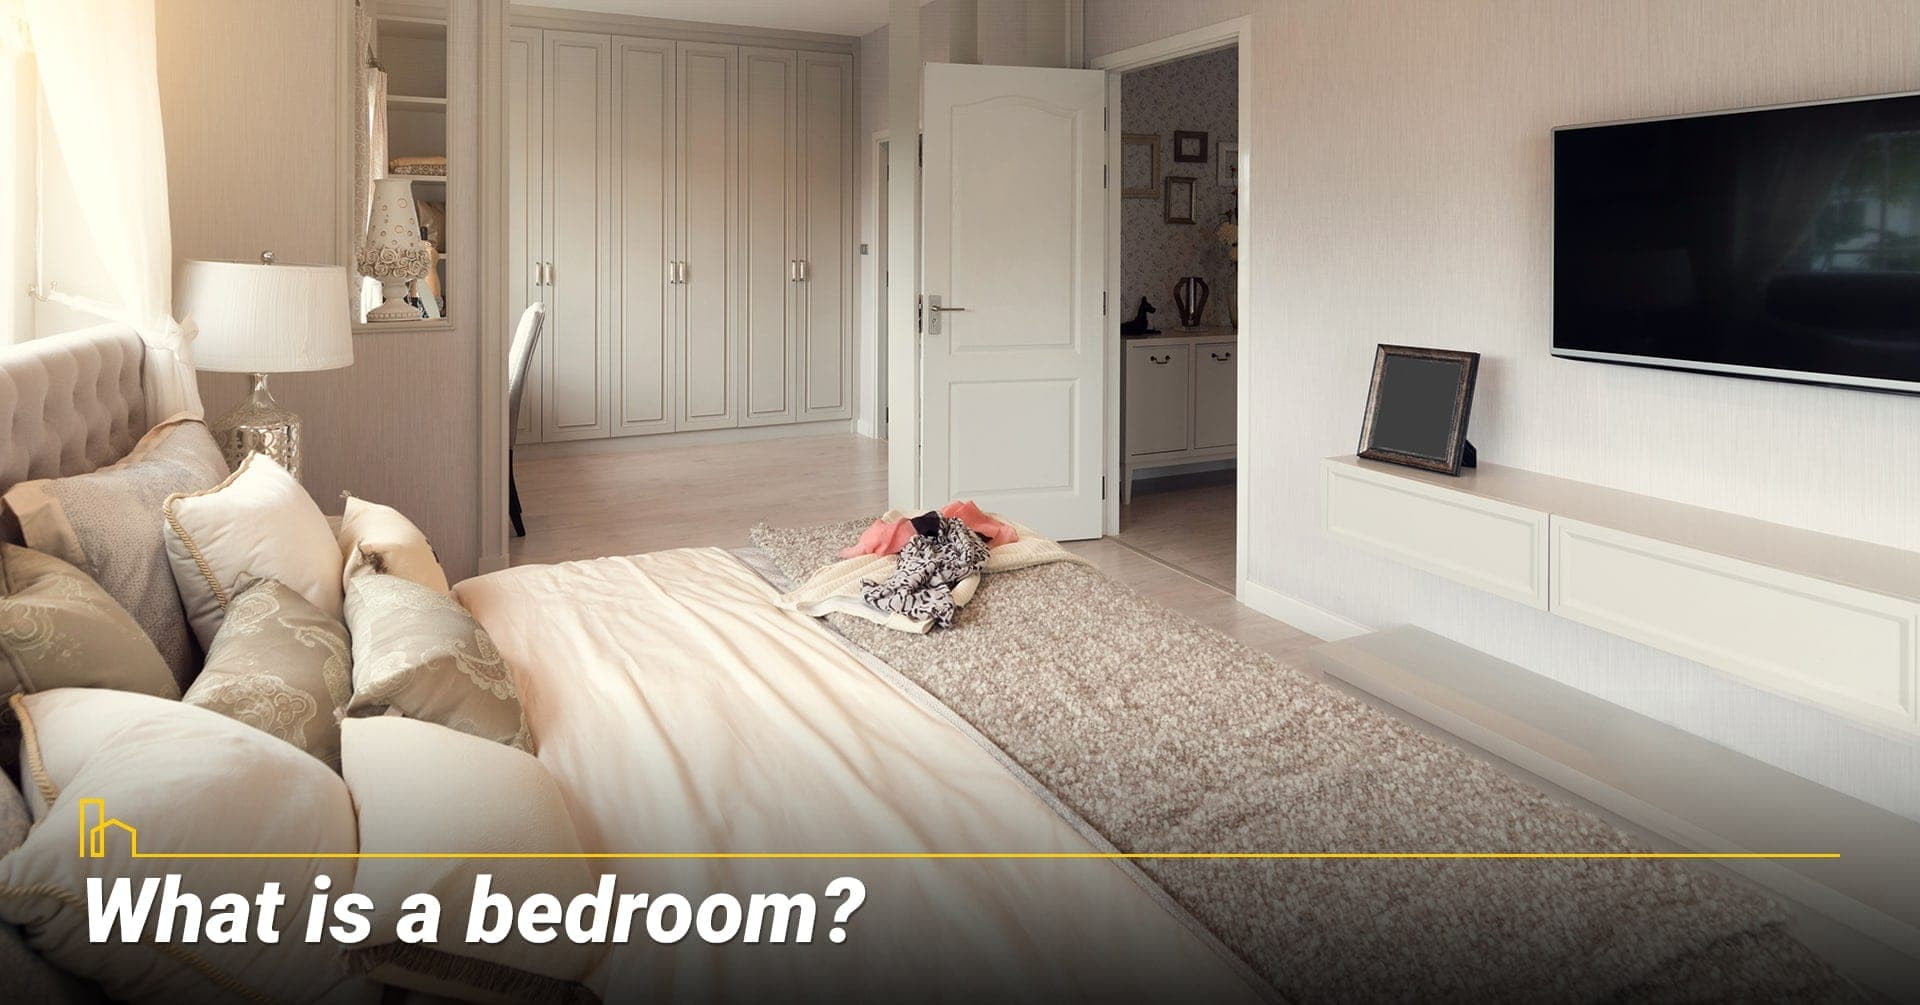 What is a bedroom? define a bedroom